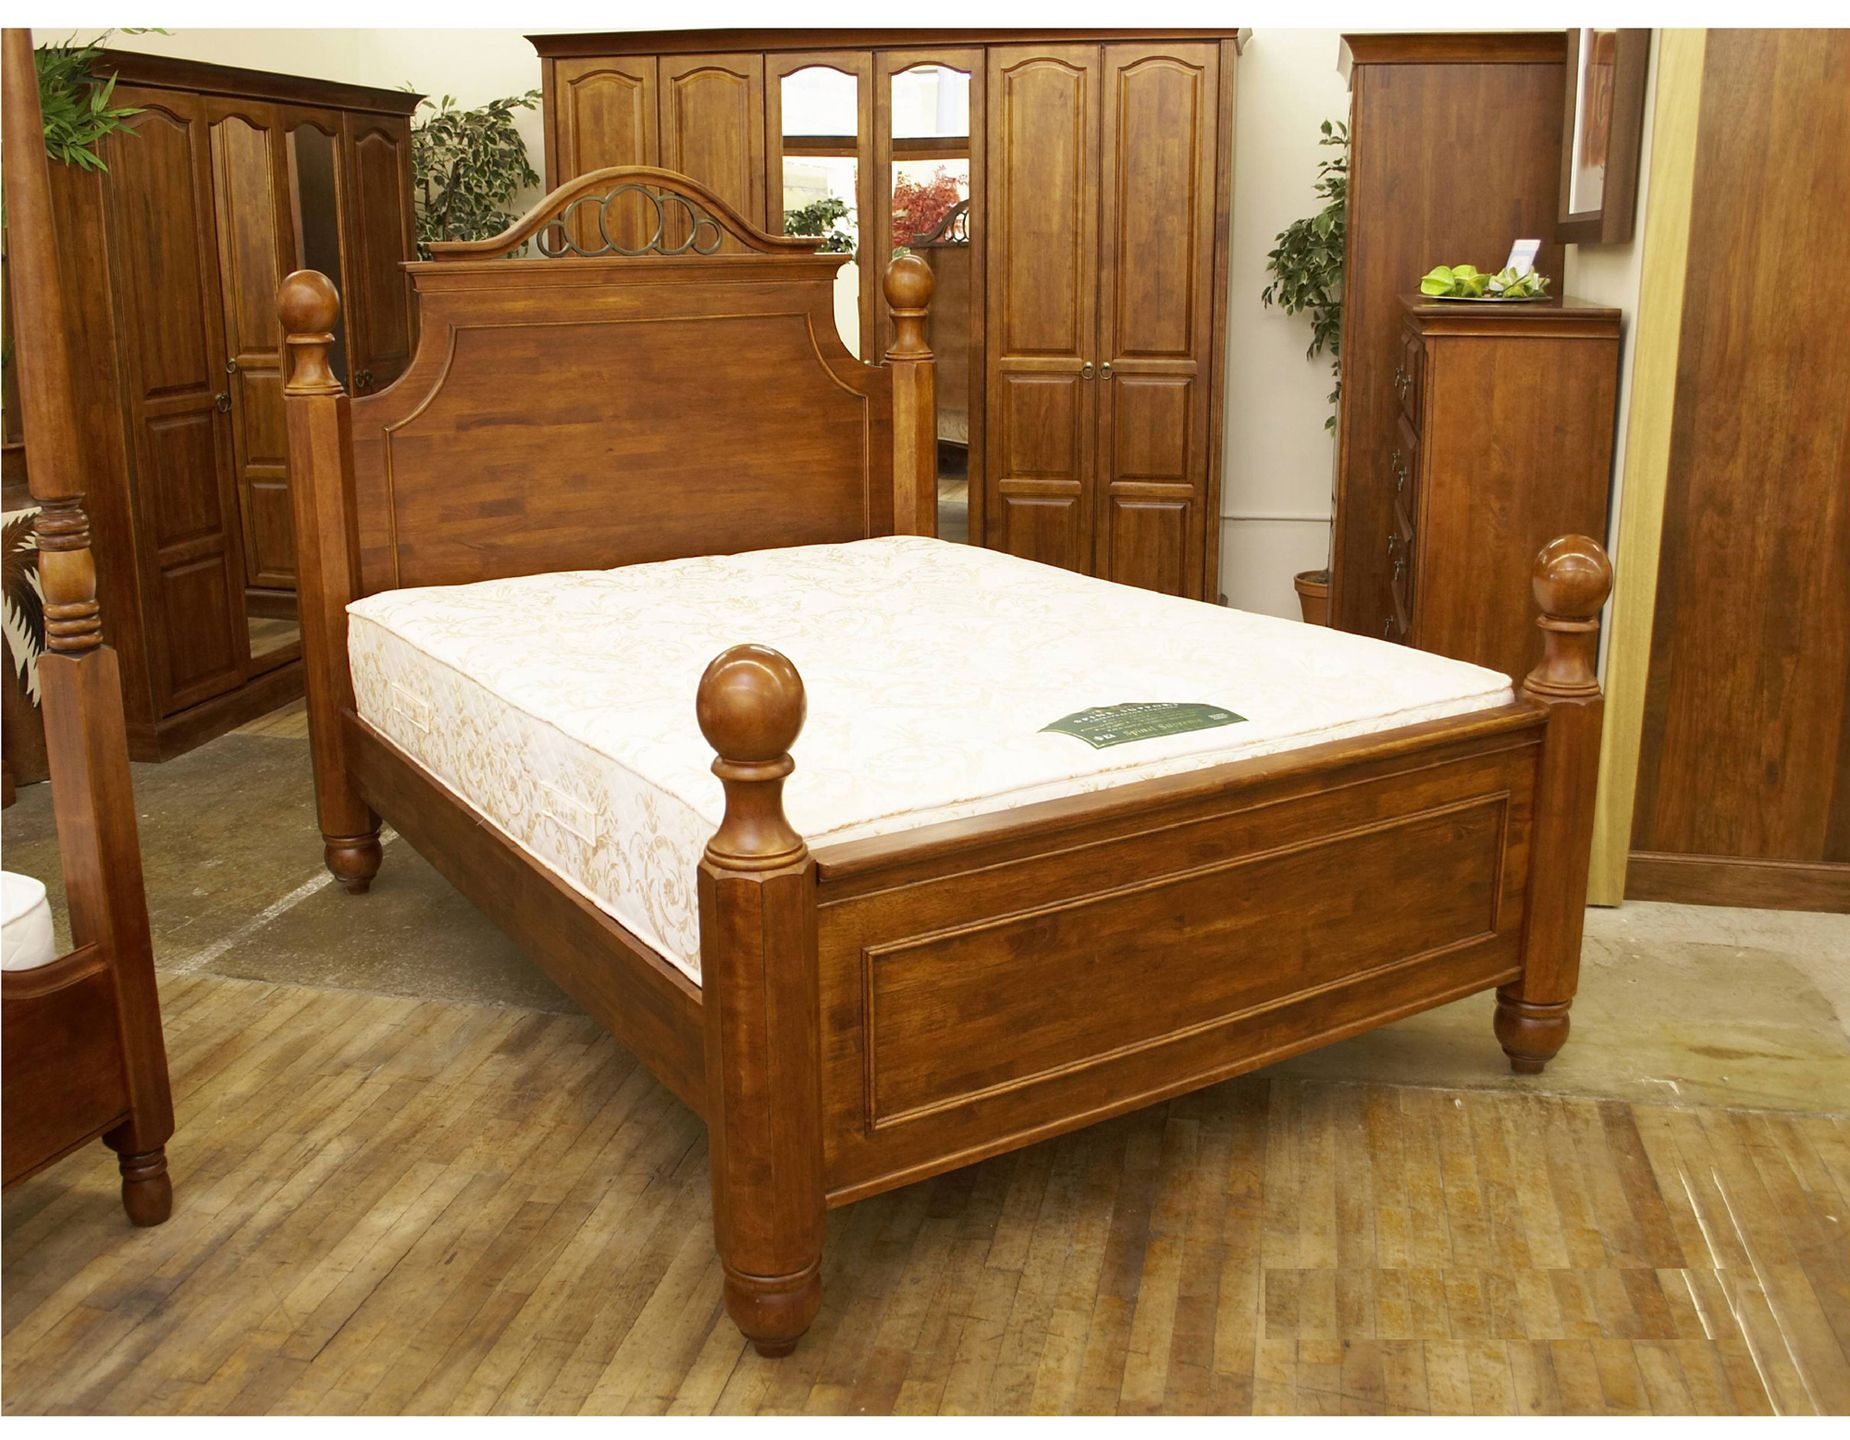 Oak Bedroom Furniture collection is hand-crafted from solid golden oak